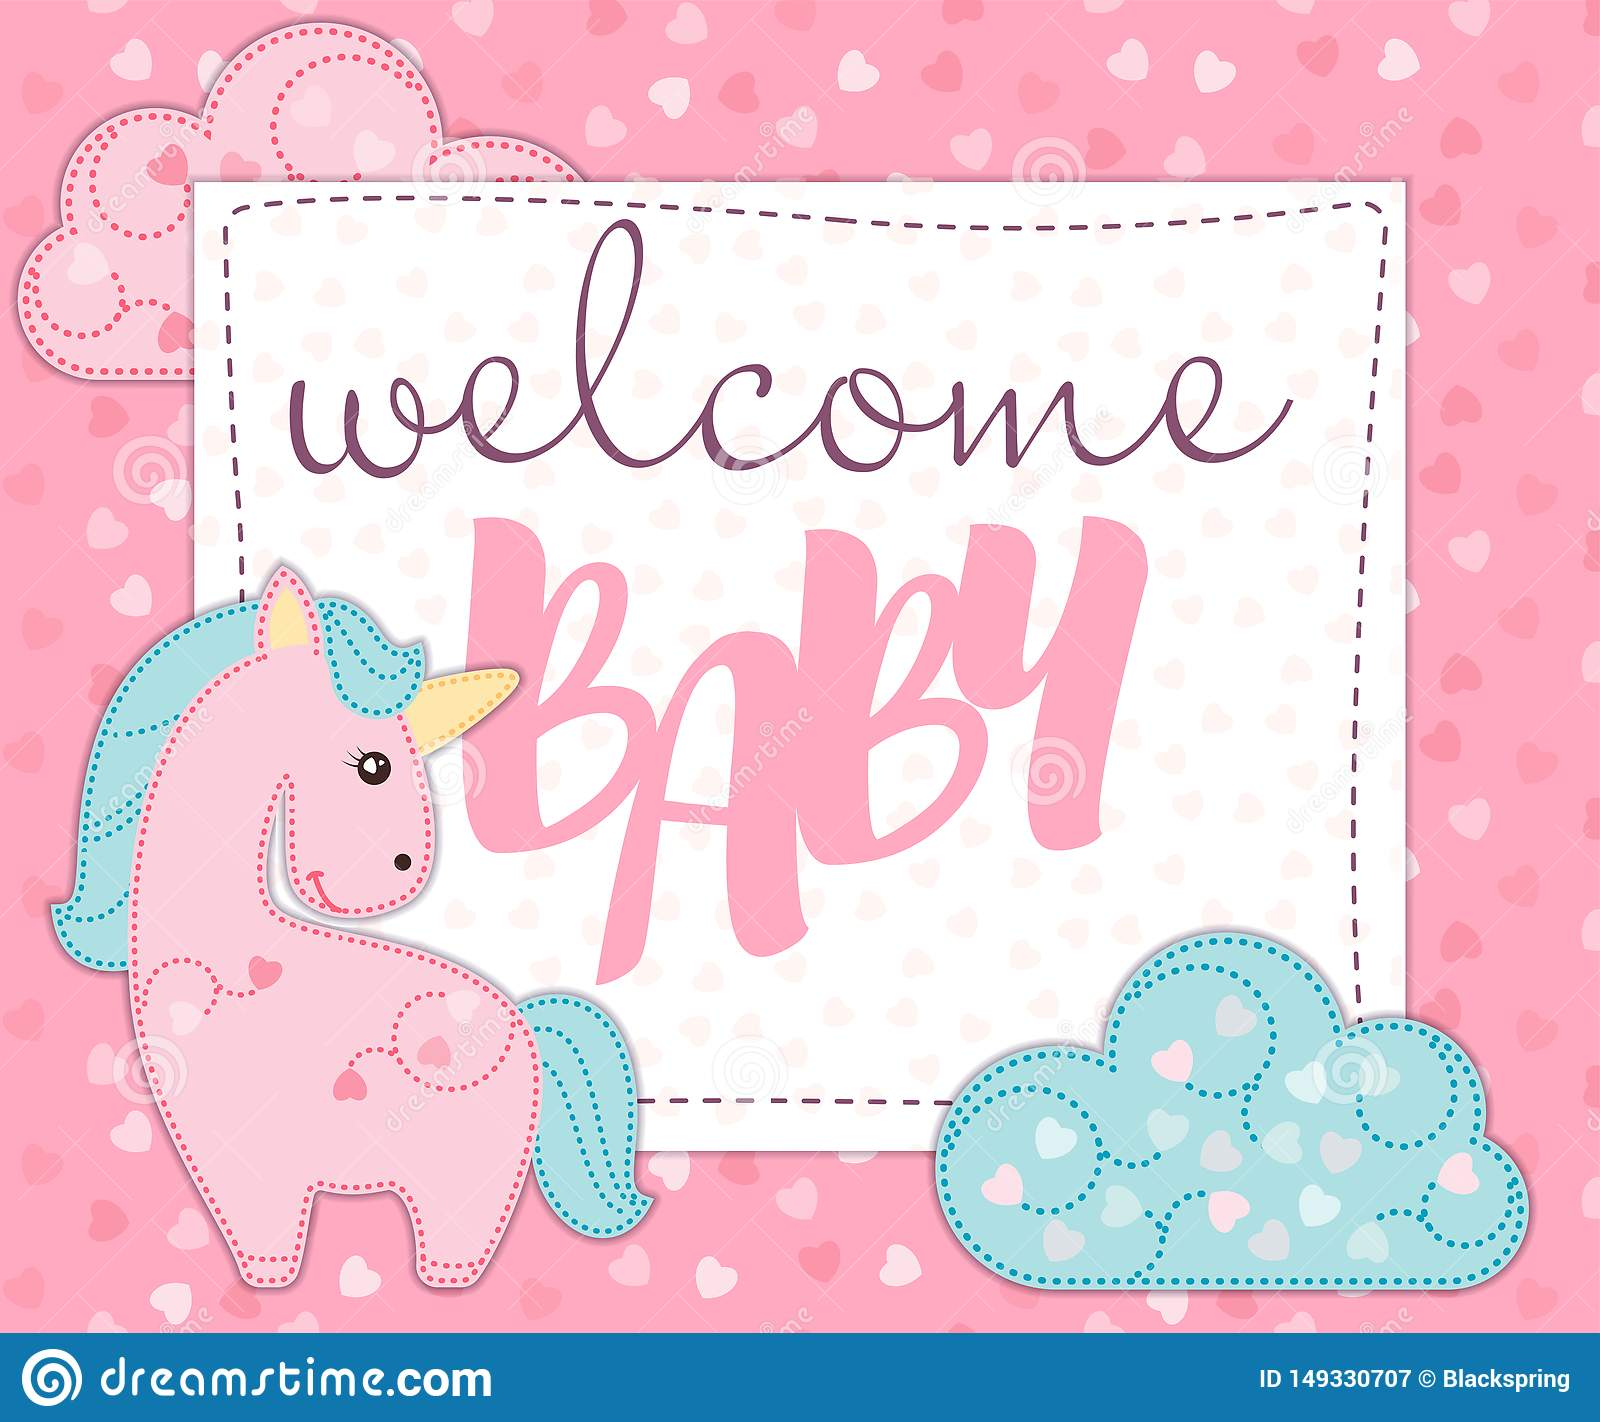 greeting card or invitation for newborn baby girl